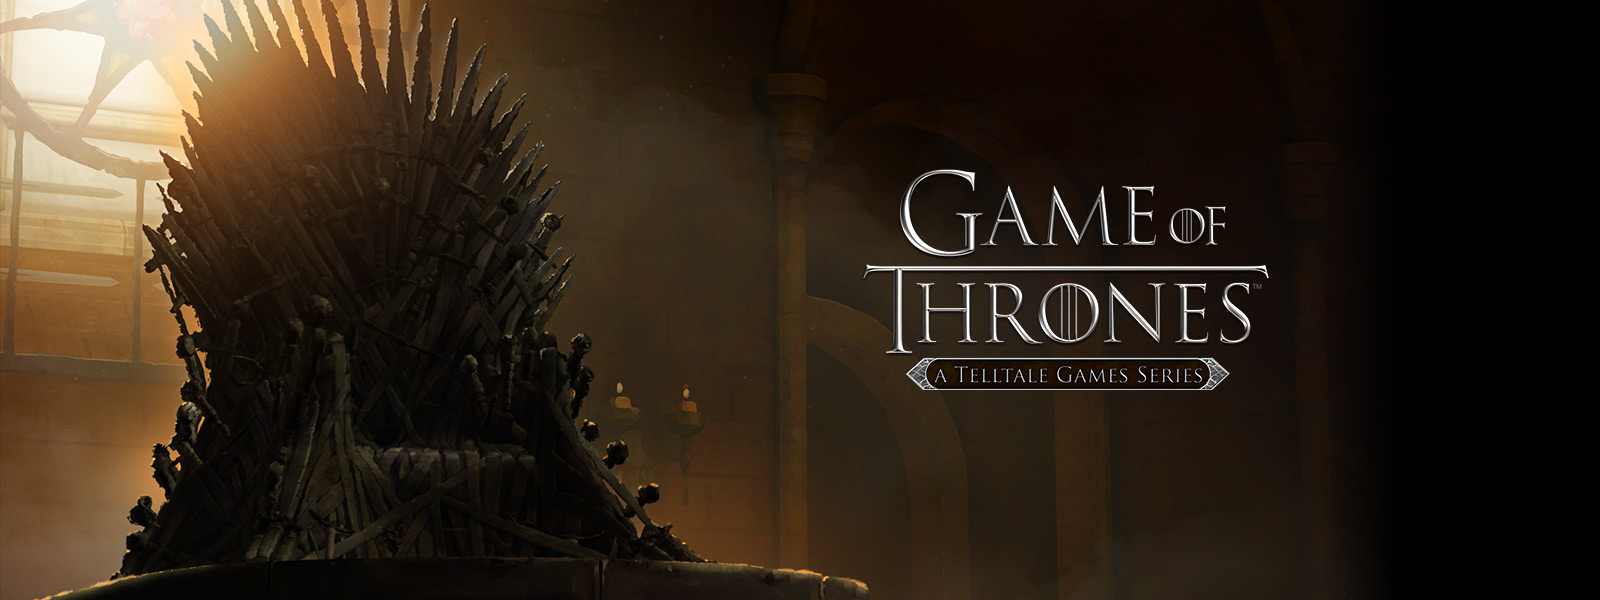 Iron throne from Games of Thrones